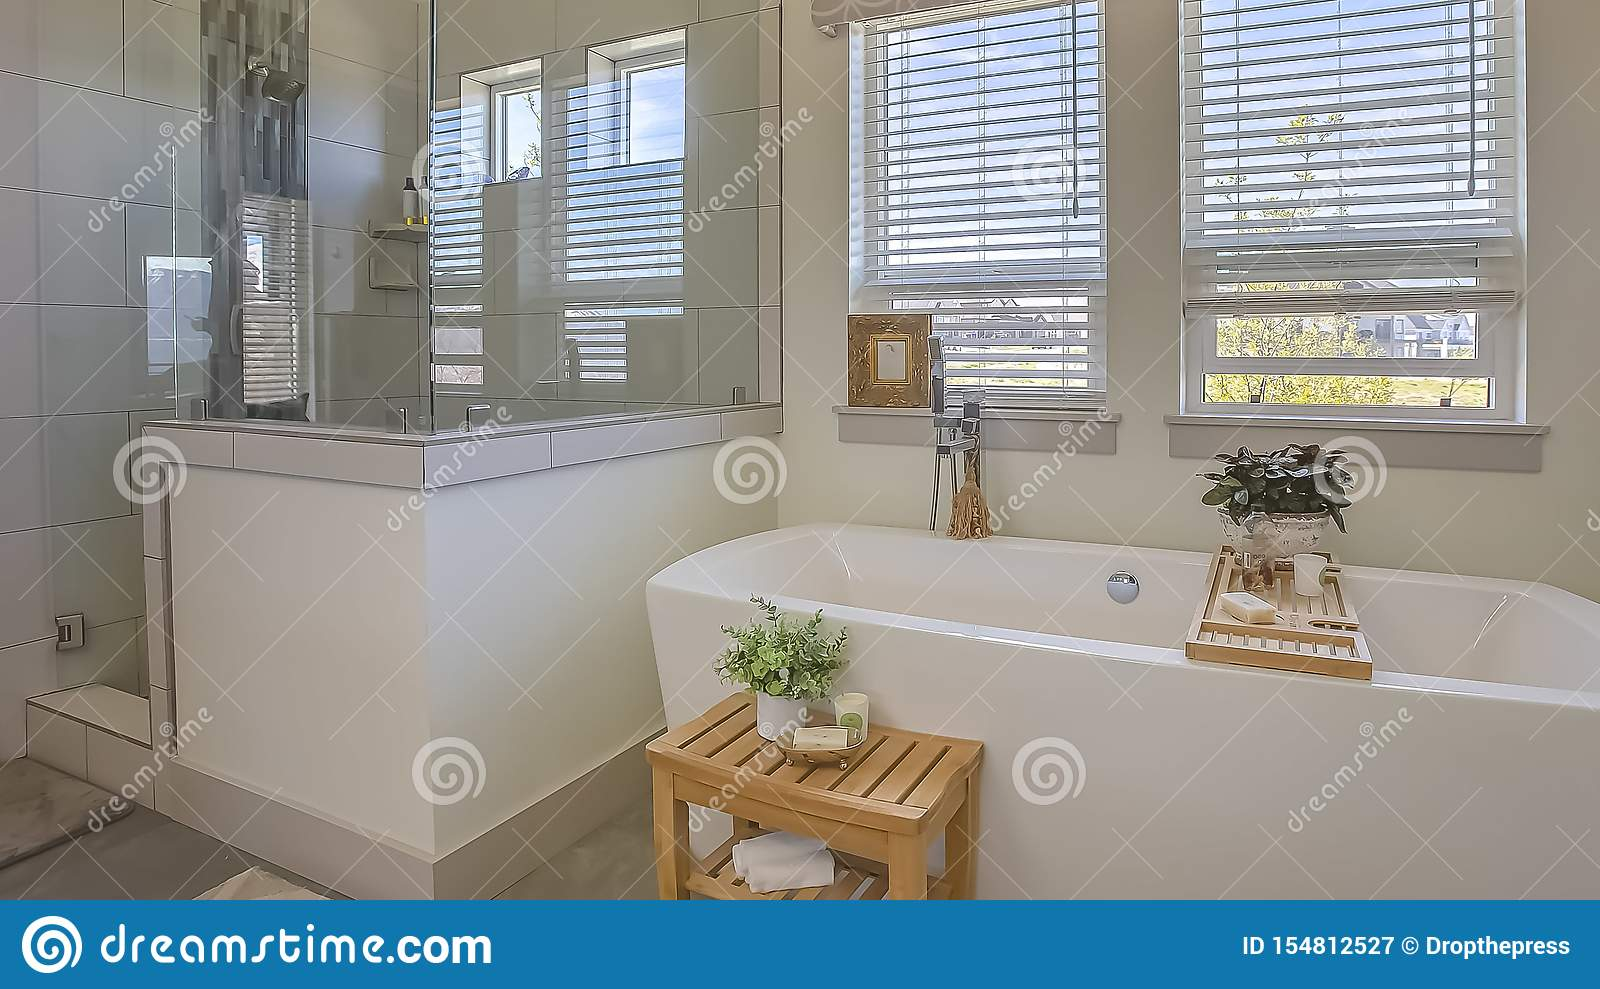 Panorama Bathtub And Shower Stall In Front Of Windows With Valance And Blinds Stock Image Image Of Panorama Architecture 154812527